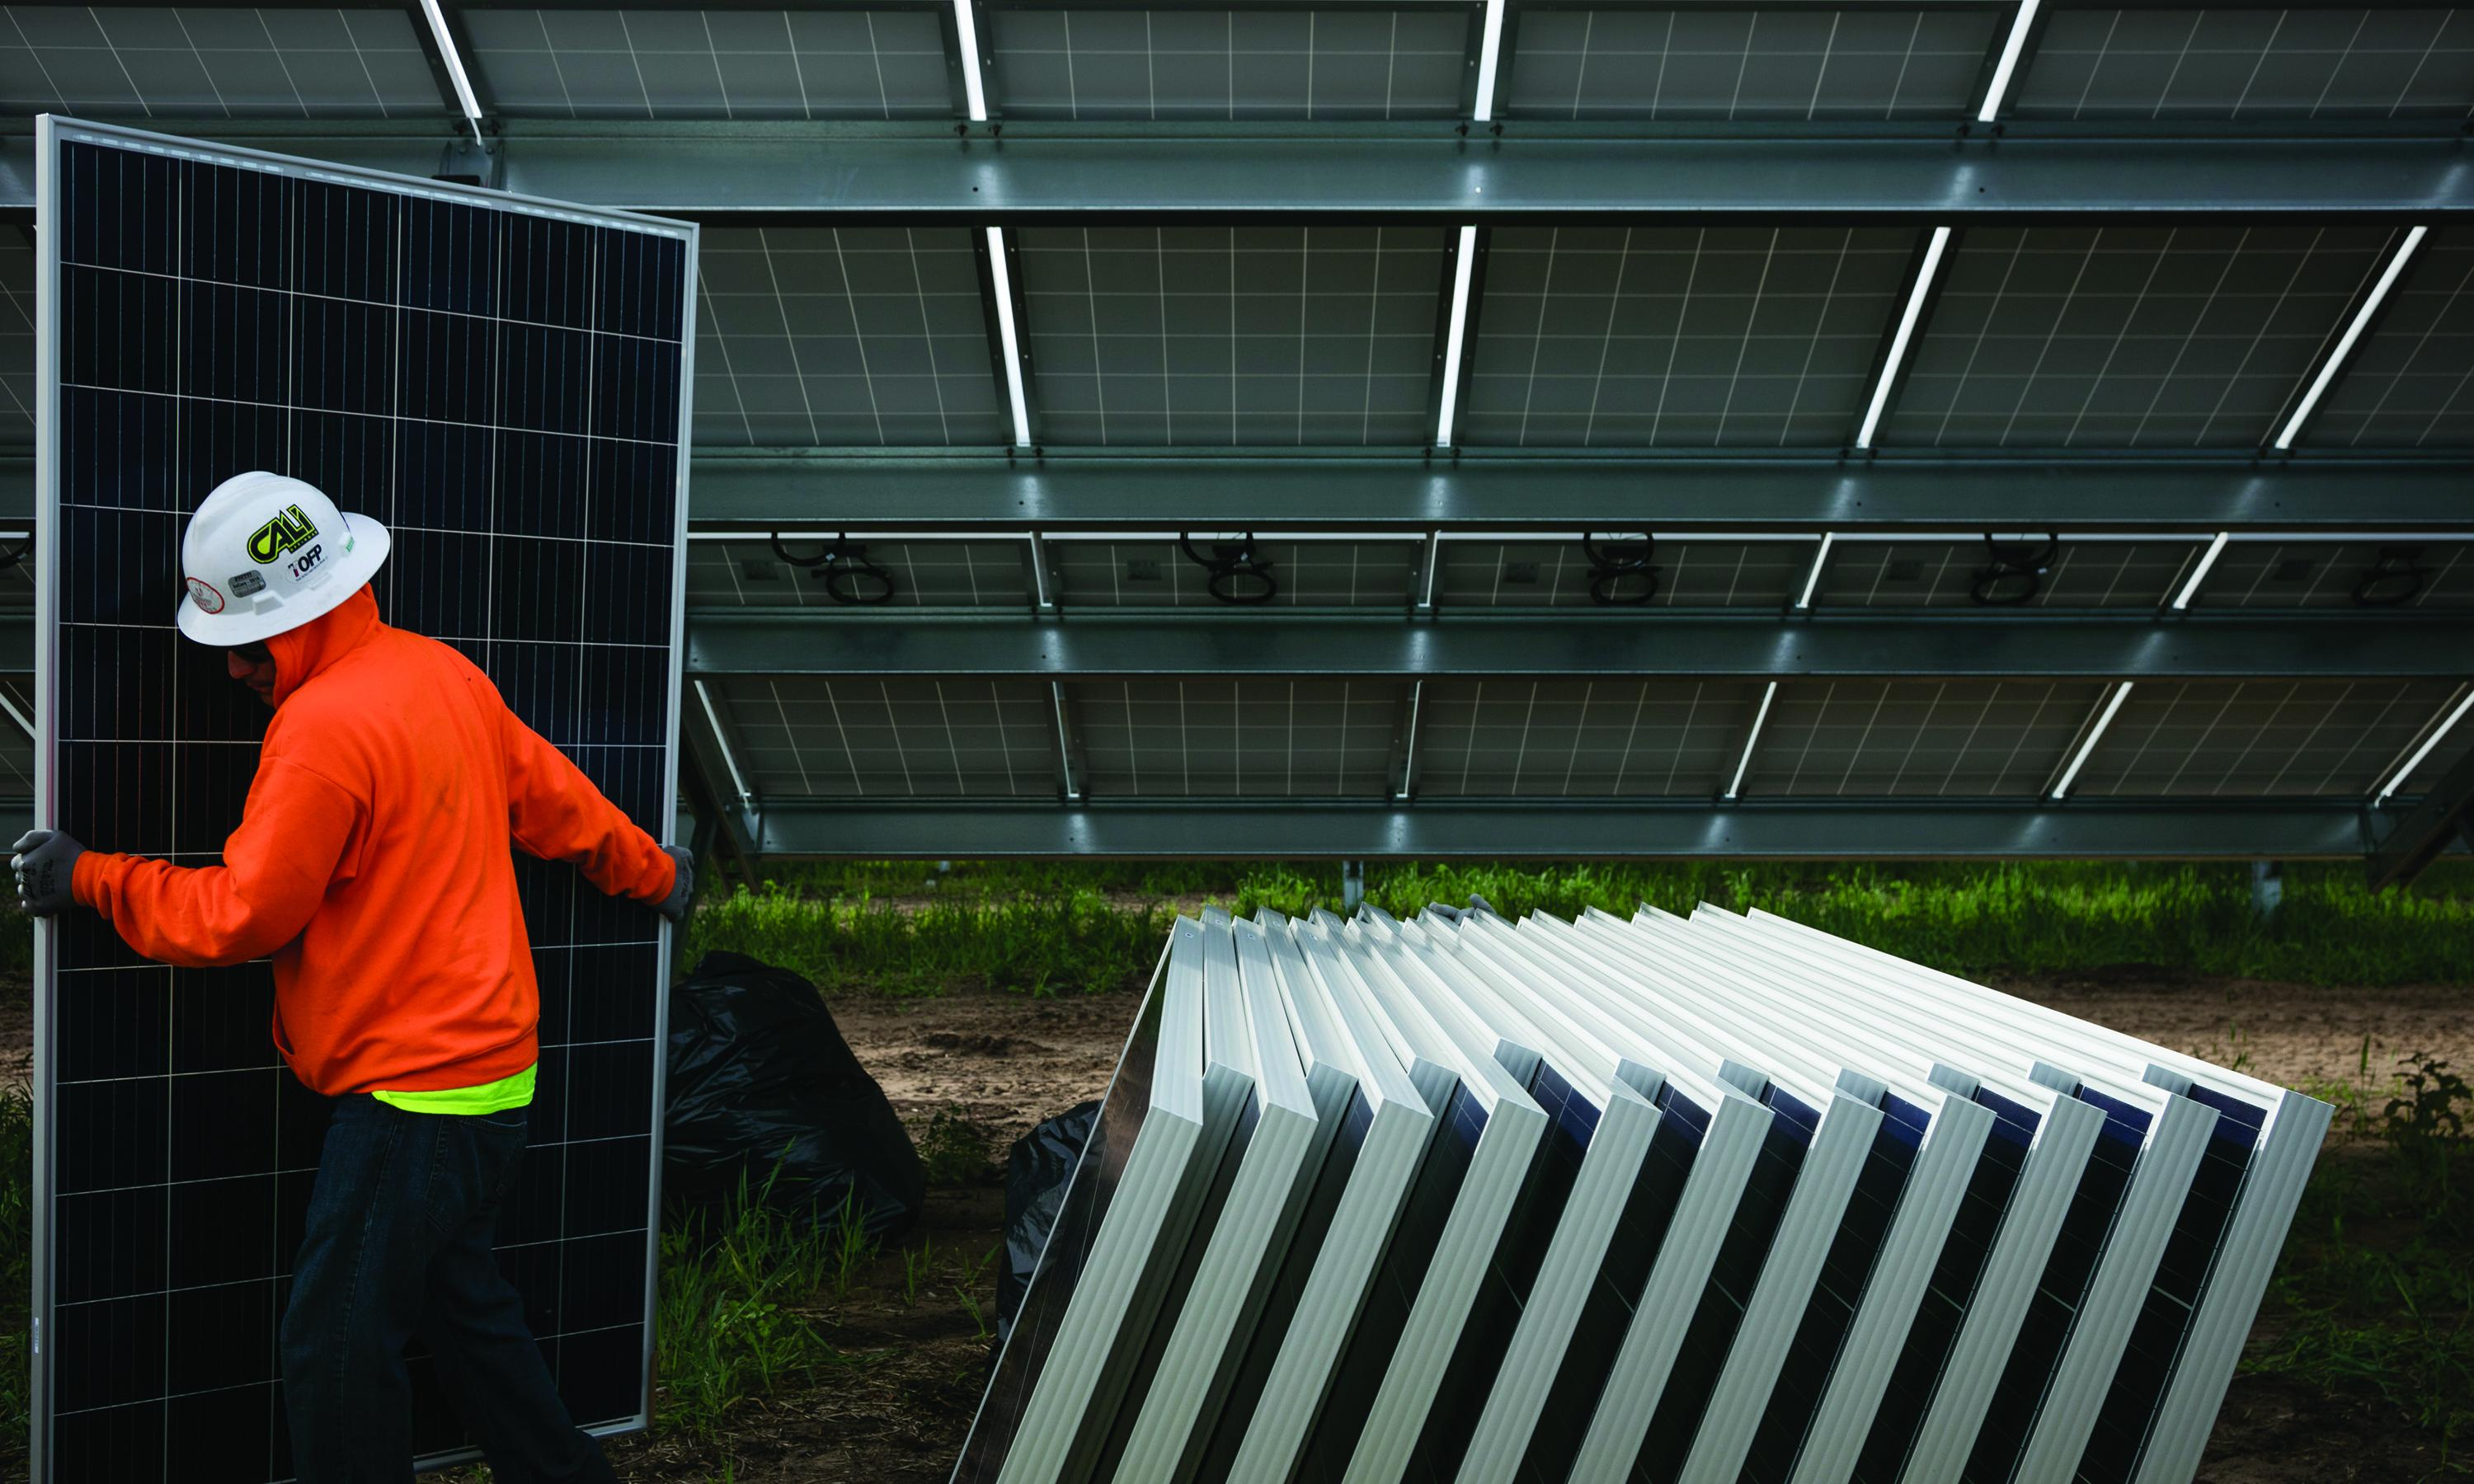 A worker carries a solar panel